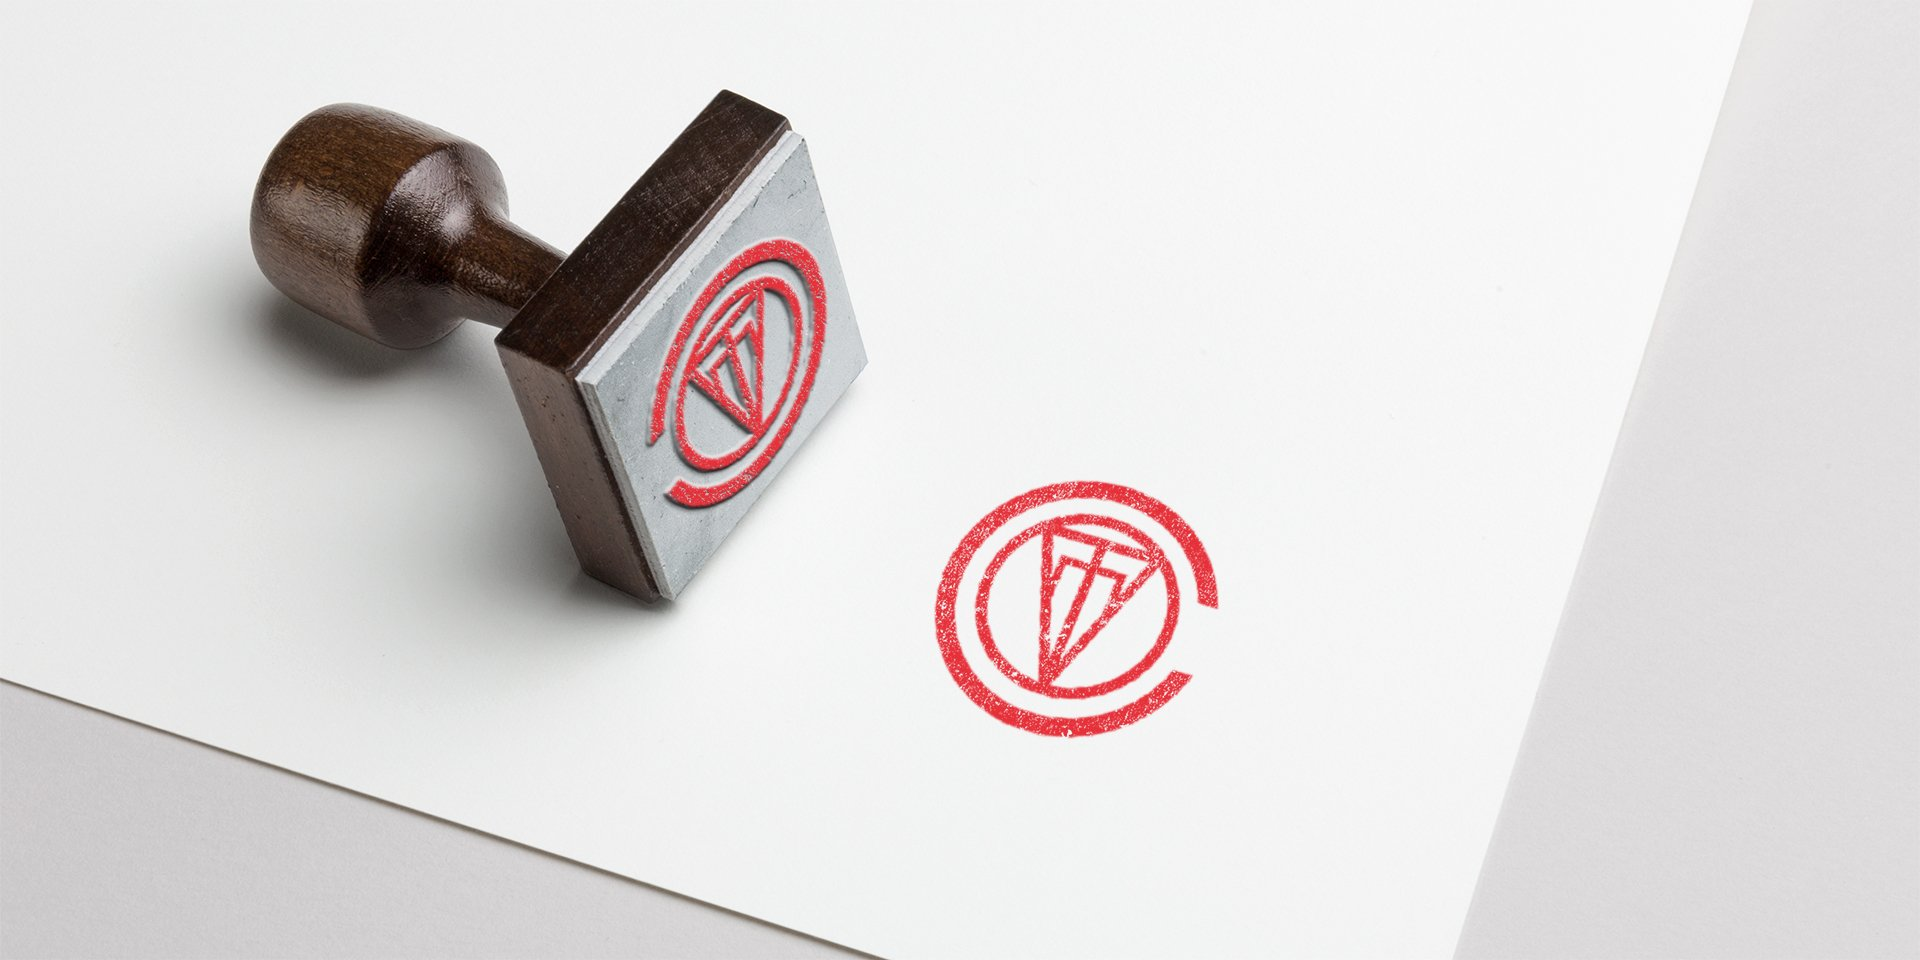 Covet logo ink stamp and ink stamper